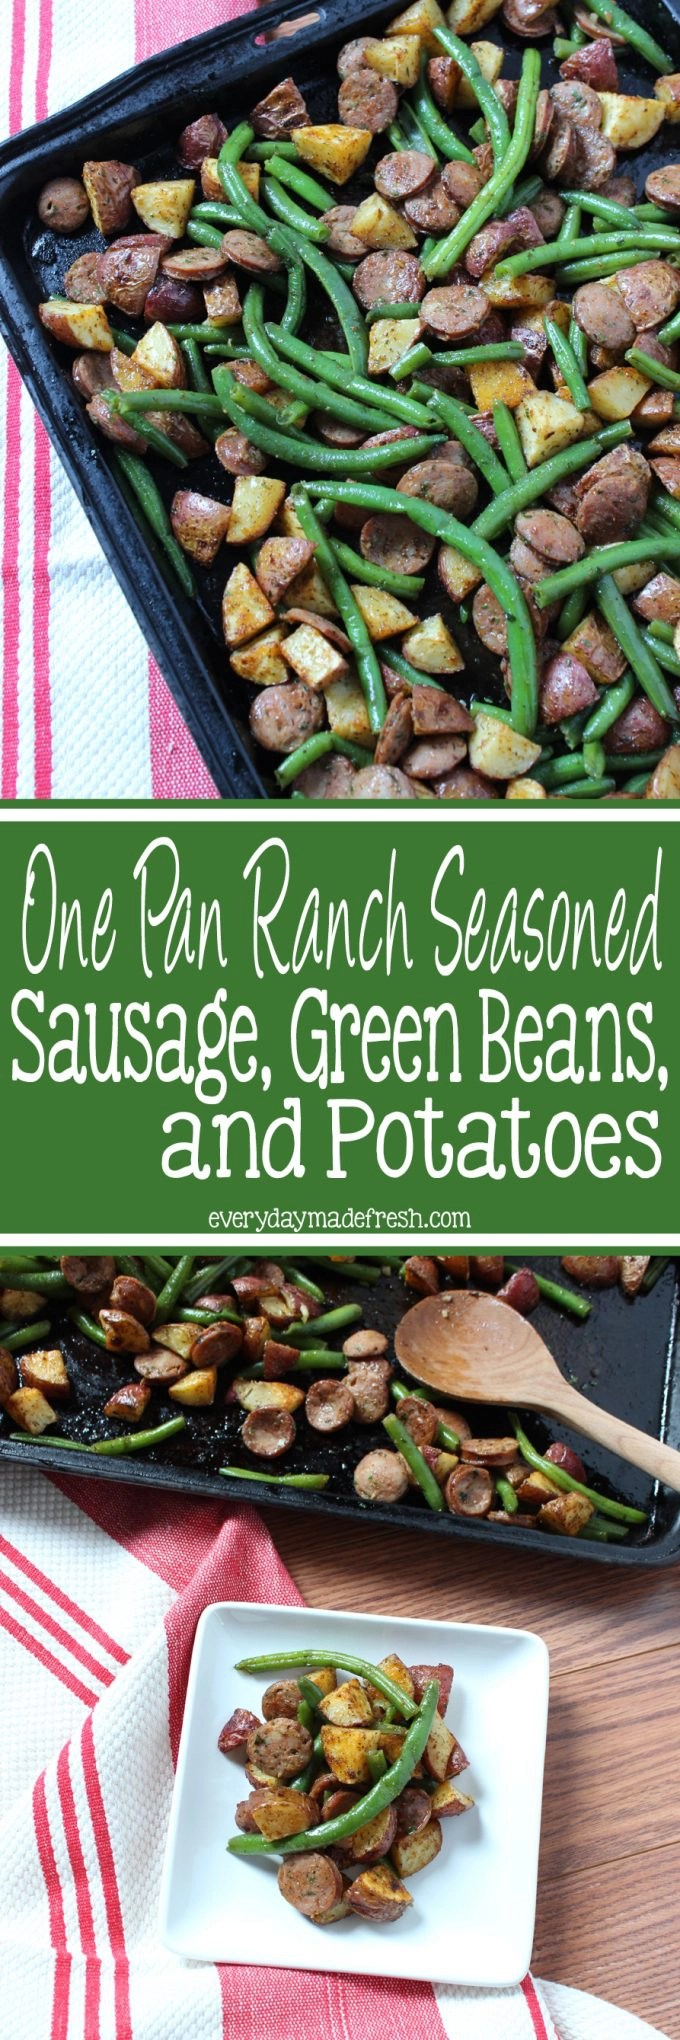 This One Pan Ranch Seasoned Sausage, Green Beans, and Potatoes is so simple and tastes so good! You'll love this easy meal any night of the week! | EverydayMadeFresh.com